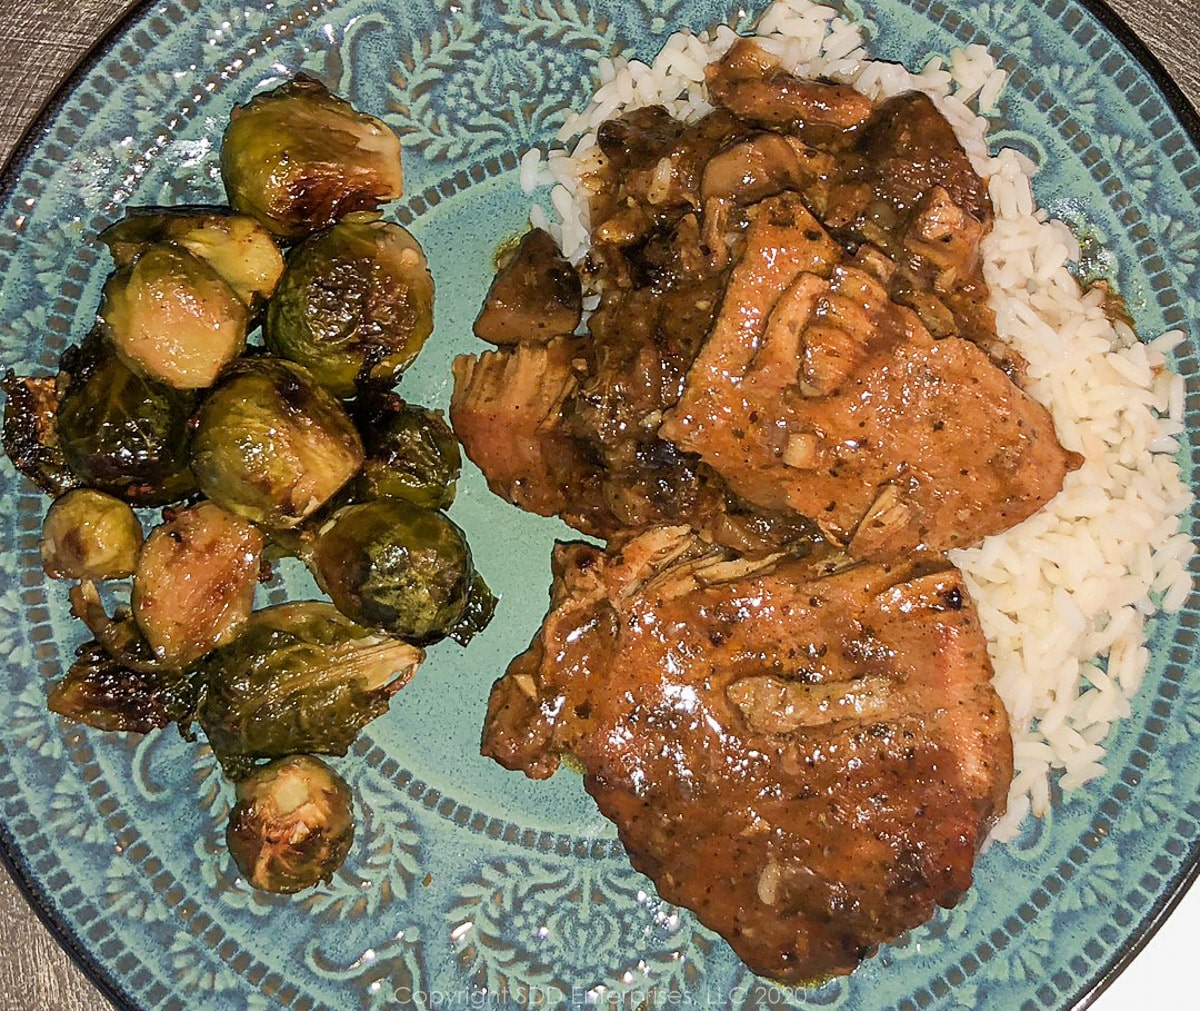 smothered pork chops with roasted brussels sprouts on a blue-green plate